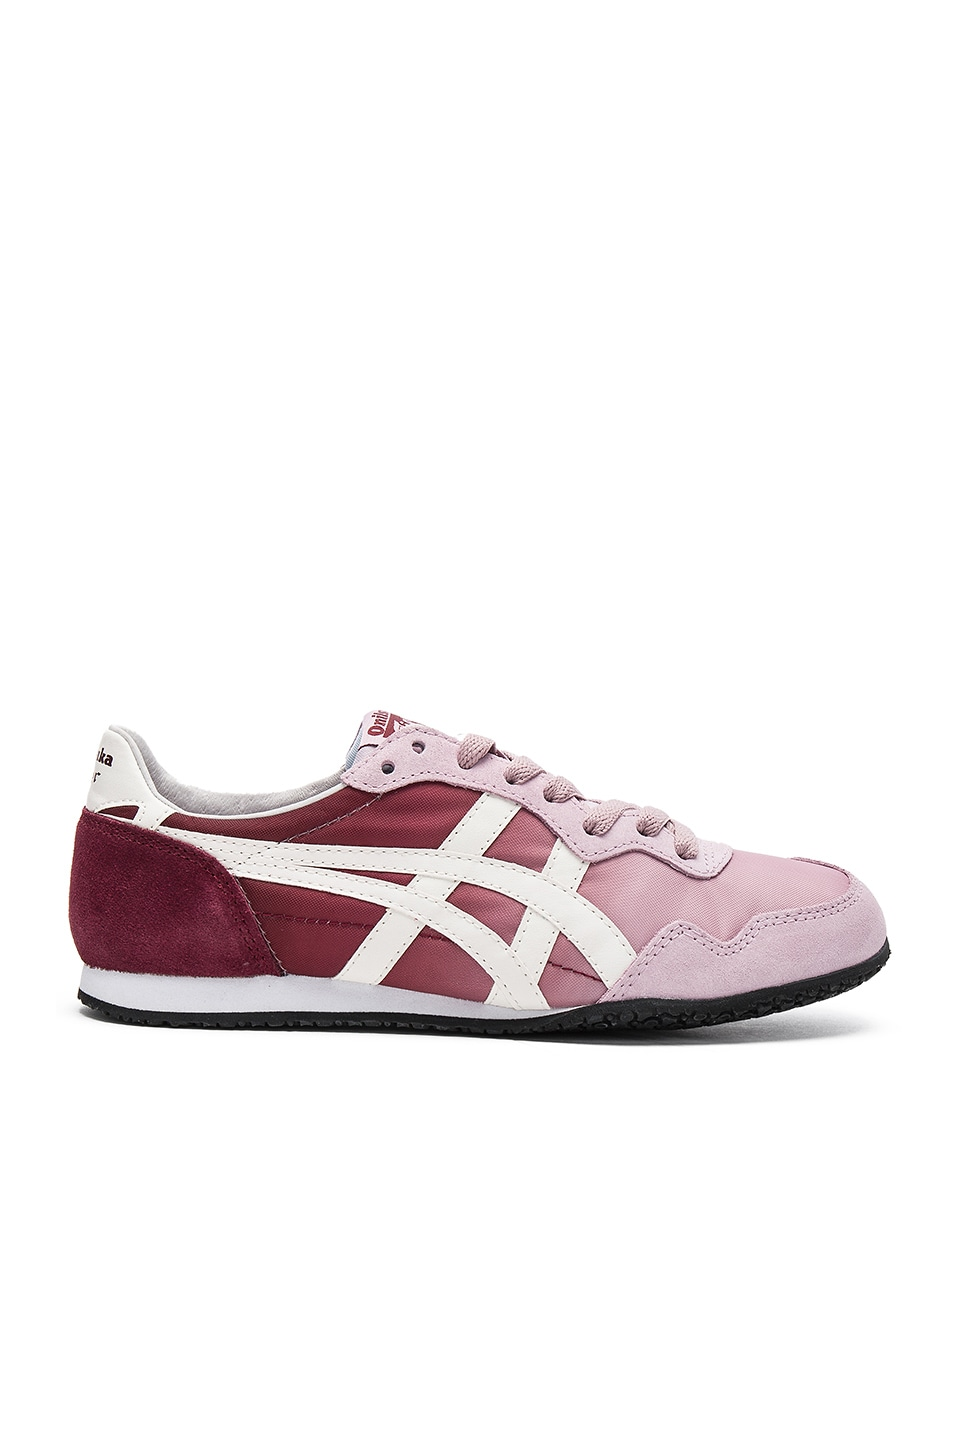 Onitsuka Tiger Serrano Sneaker in Lilac & Slight White